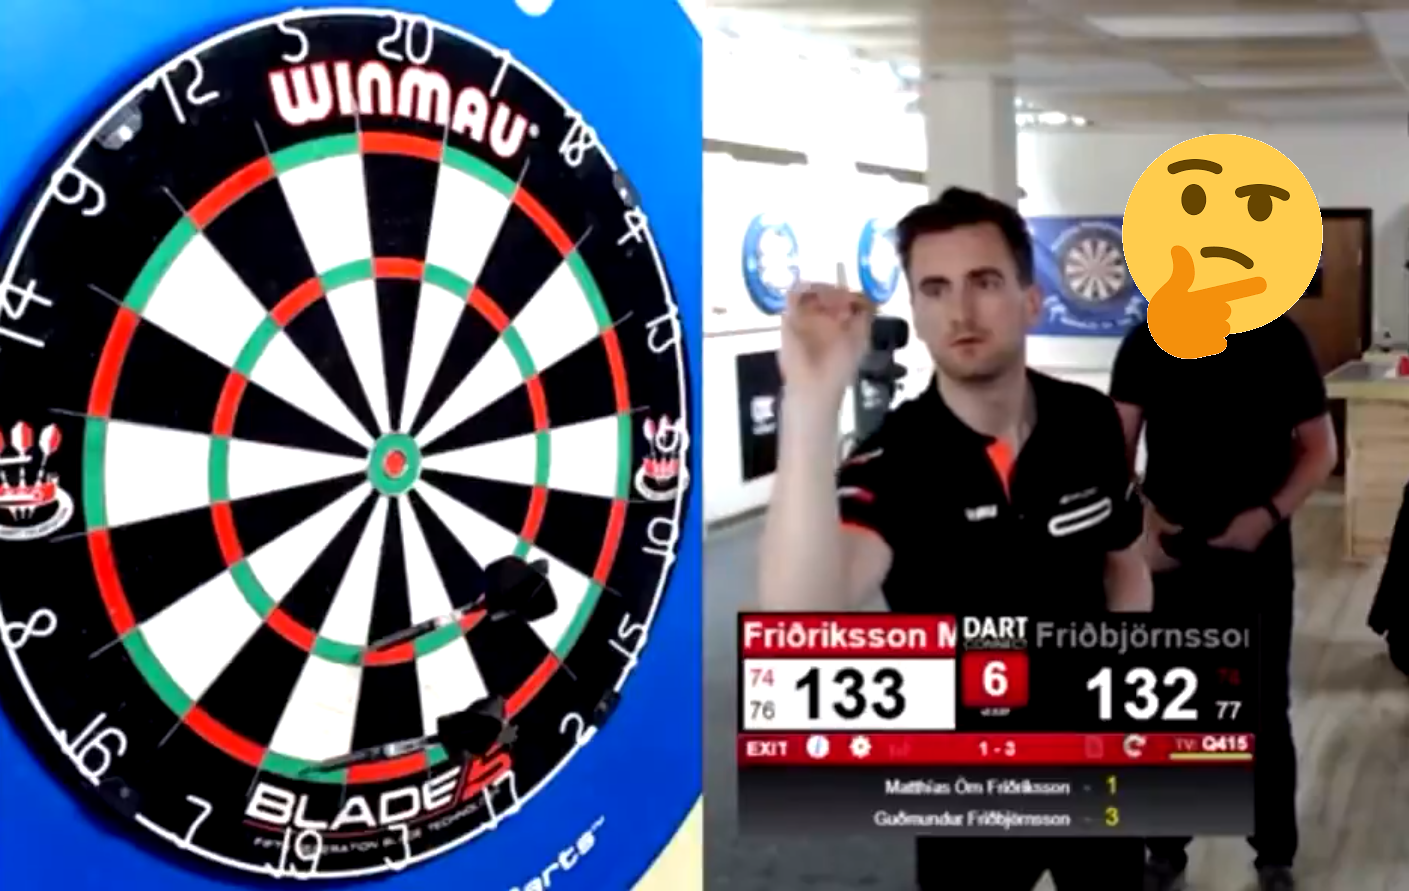 Never Before Seen 133 Checkout At Icelandic Pro Tour 8